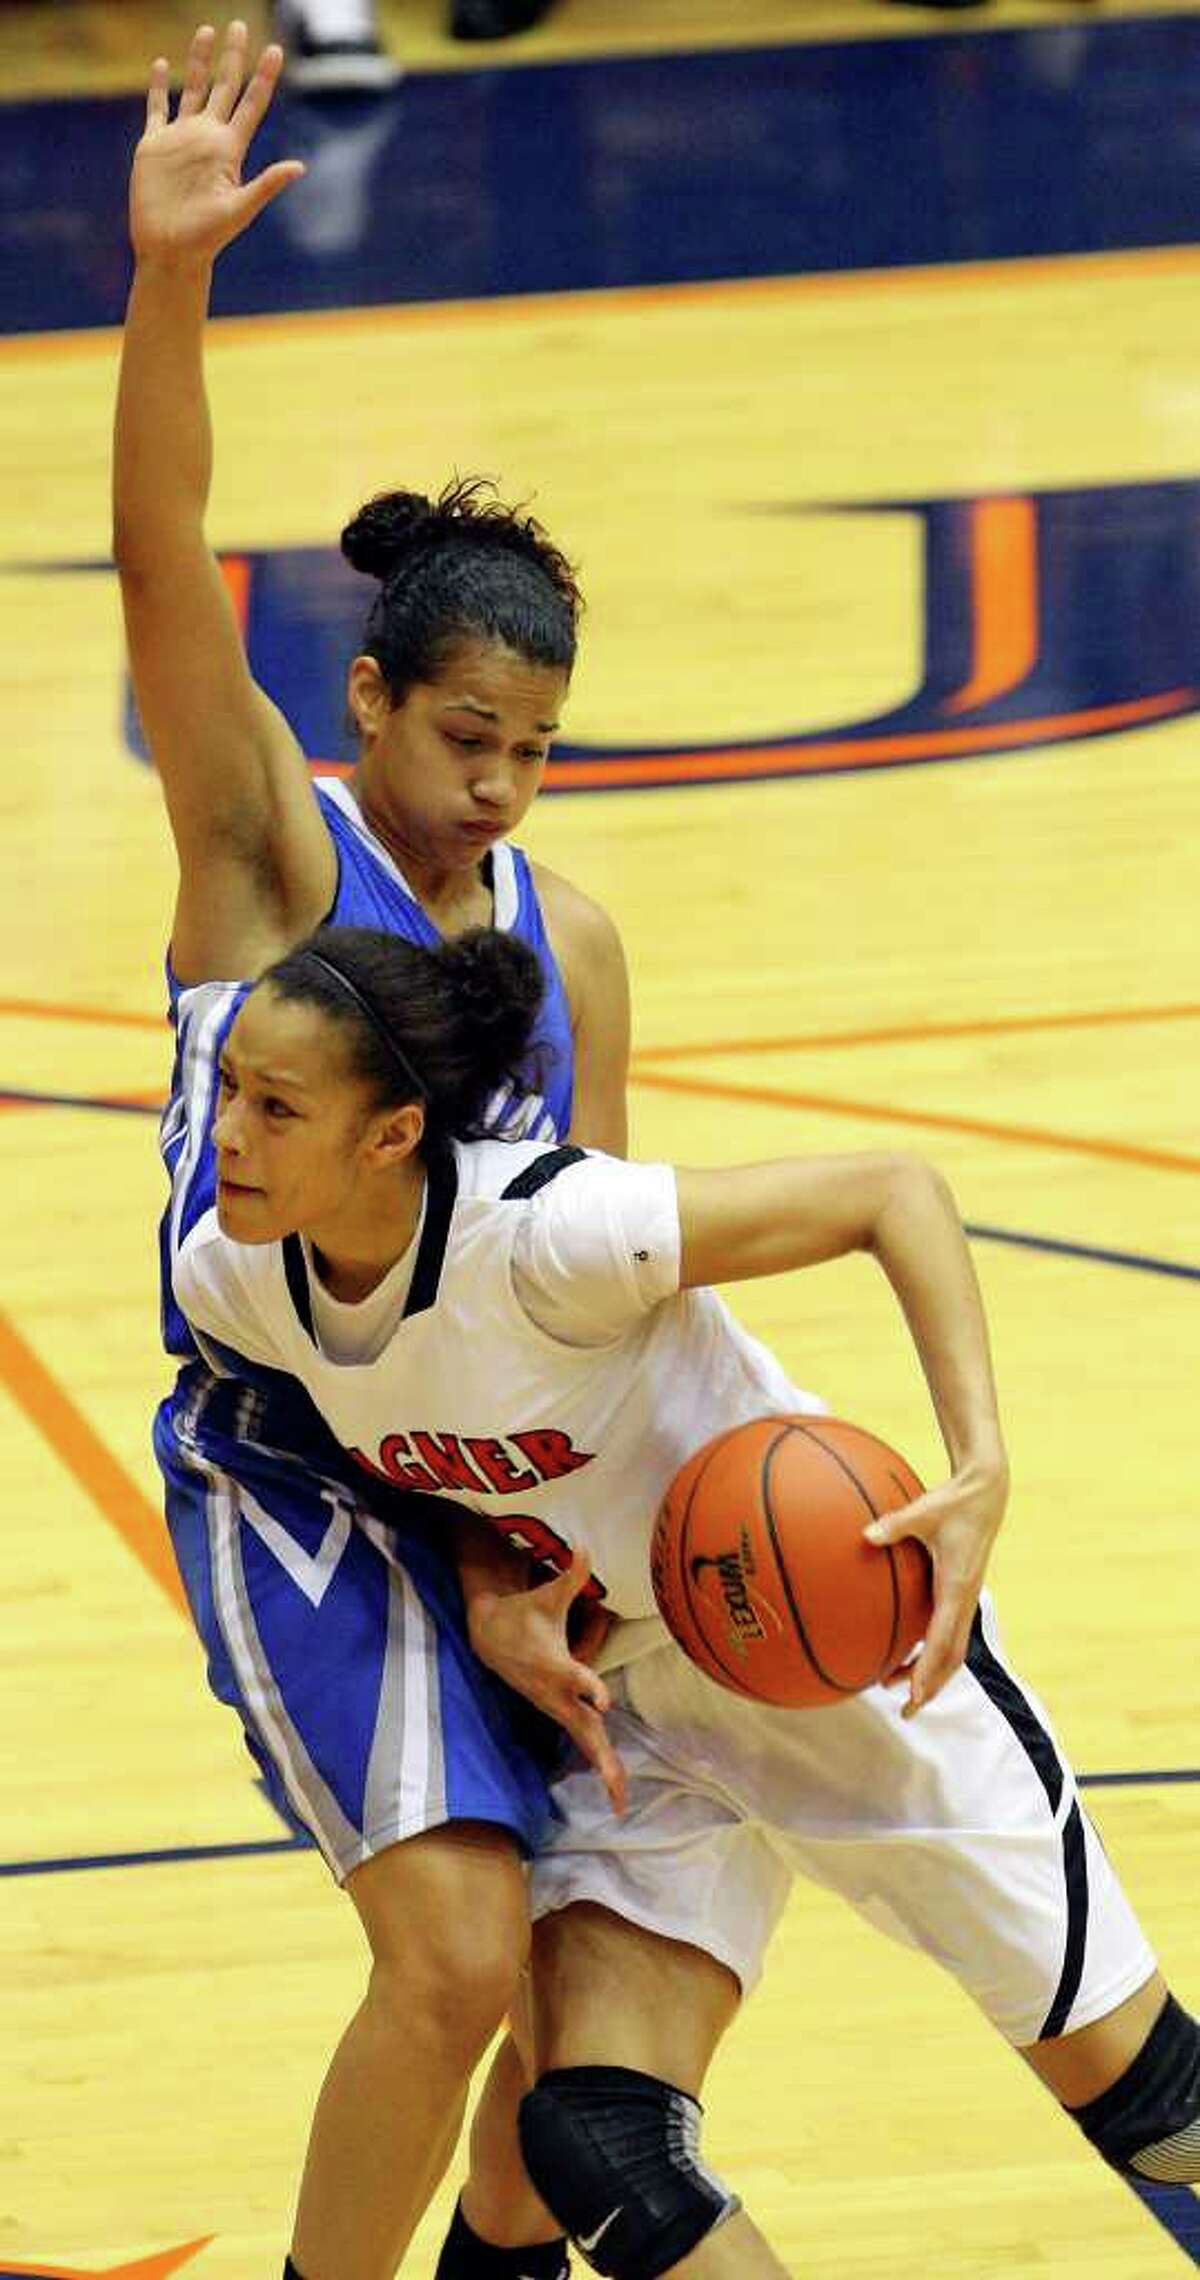 Wagner's Arielle Roberson looks for room around Jay's Erica Donovan during the first half on Monday, Feb. 21, 2011, at the UTSA Convocation Center.